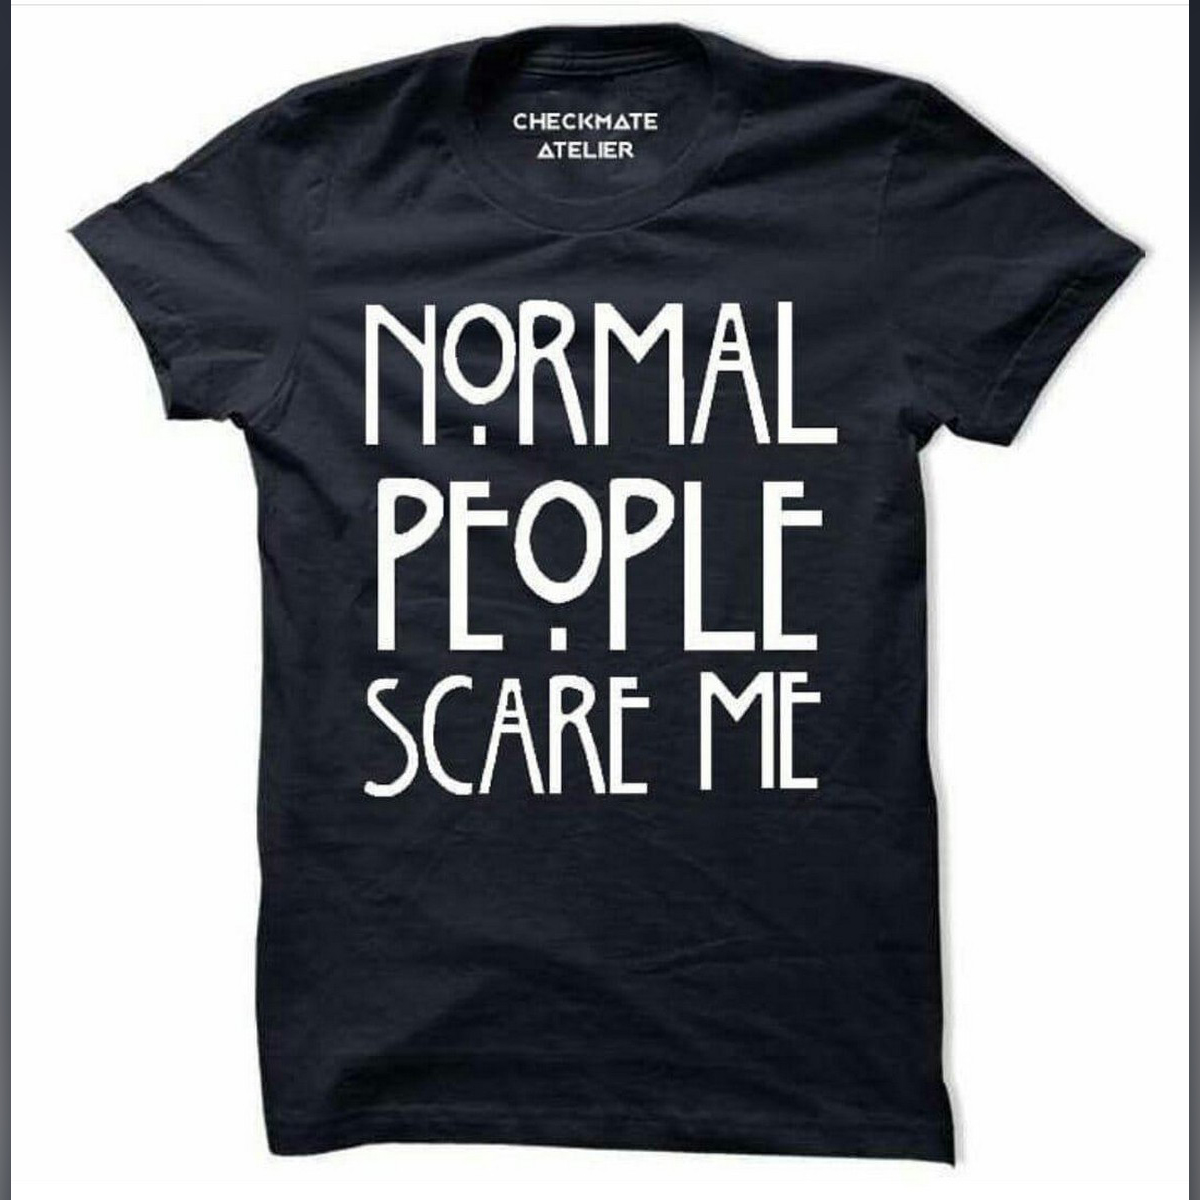 Normal People Scare Me Amazing Smart Fit T Shirt Men O-Neck Half Sleeves Tee Shirt Round Neck Cotton TShirt Casual Tshirt TShirt Summer Wear Spring Wear Tops